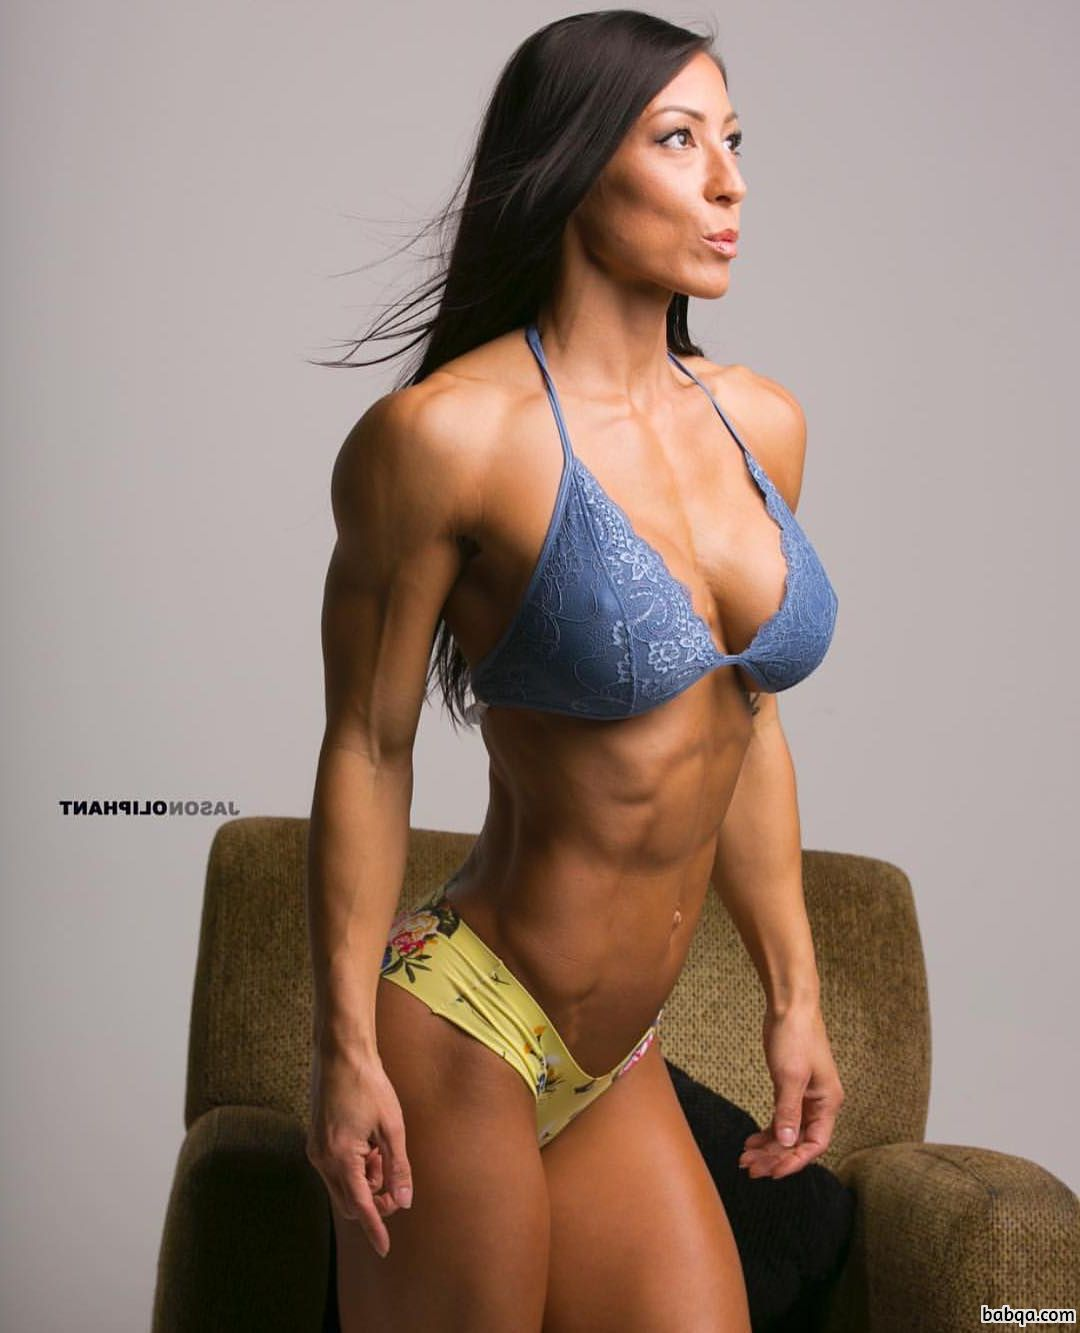 spicy woman with muscular body and muscle biceps picture from tumblr